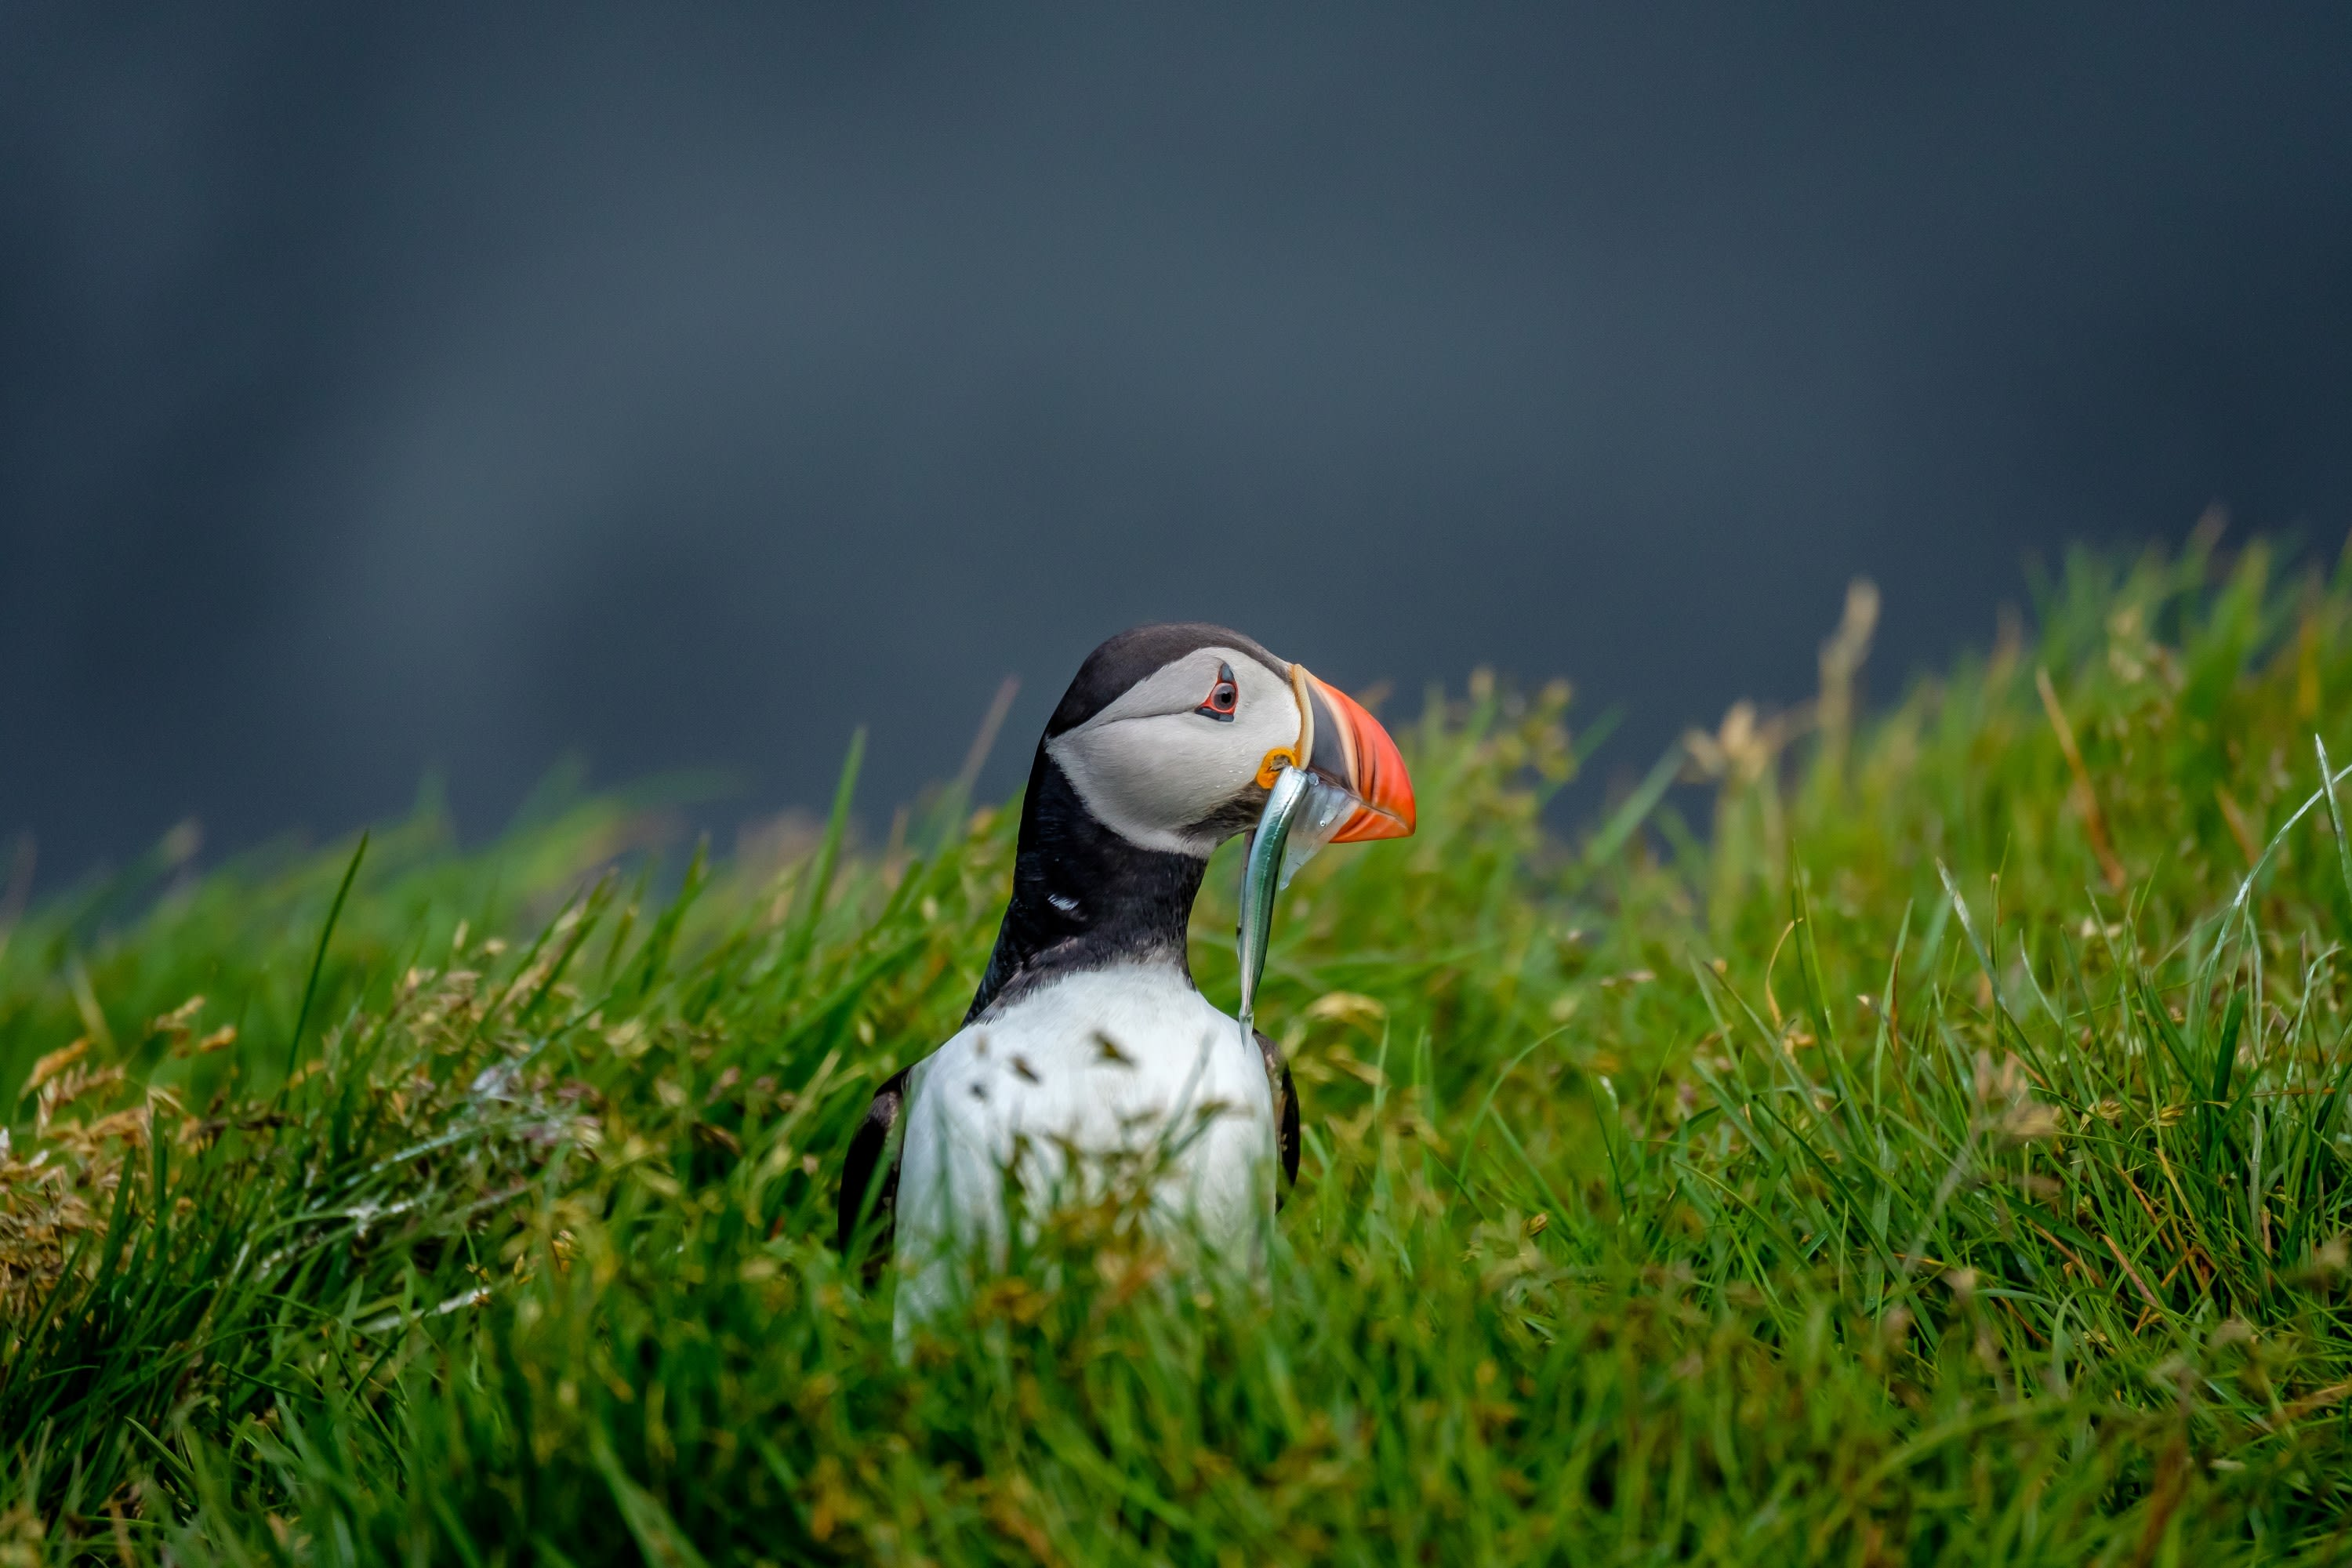 a puffin with a fish in its mouth pictured here in Iceland, sitting in bright green grass